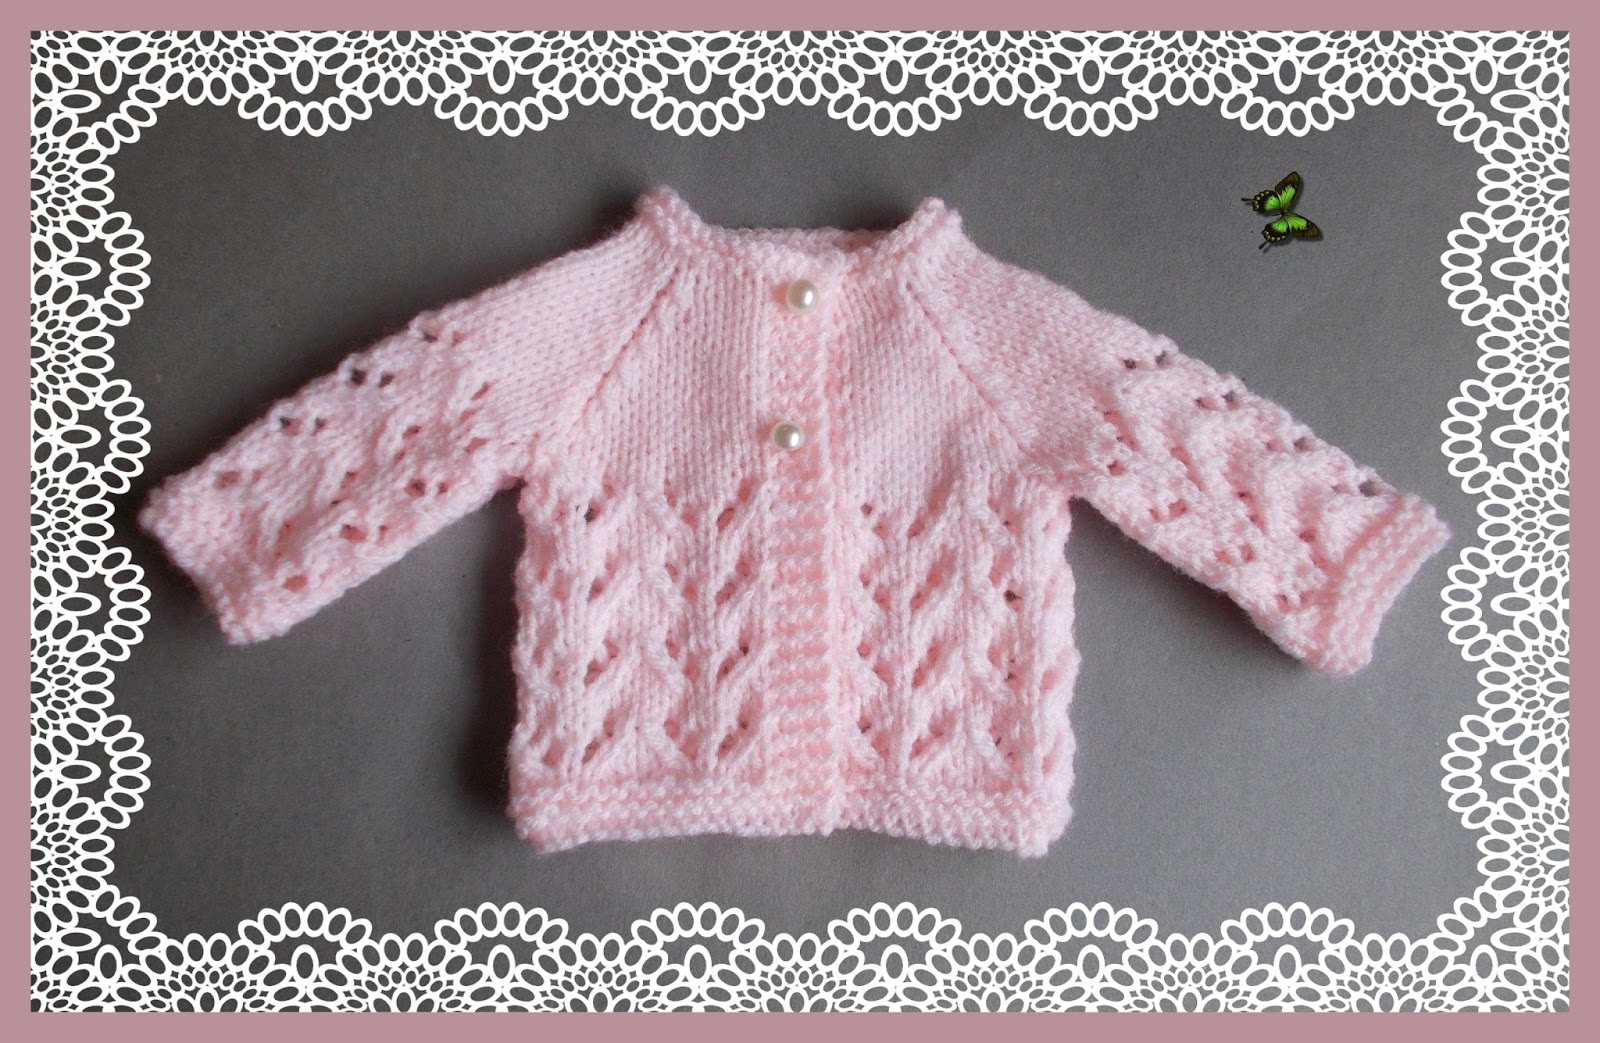 Preemie Knitting Patterns Free : mariannas lazy daisy days: Little Bibi - Preemie Baby ...